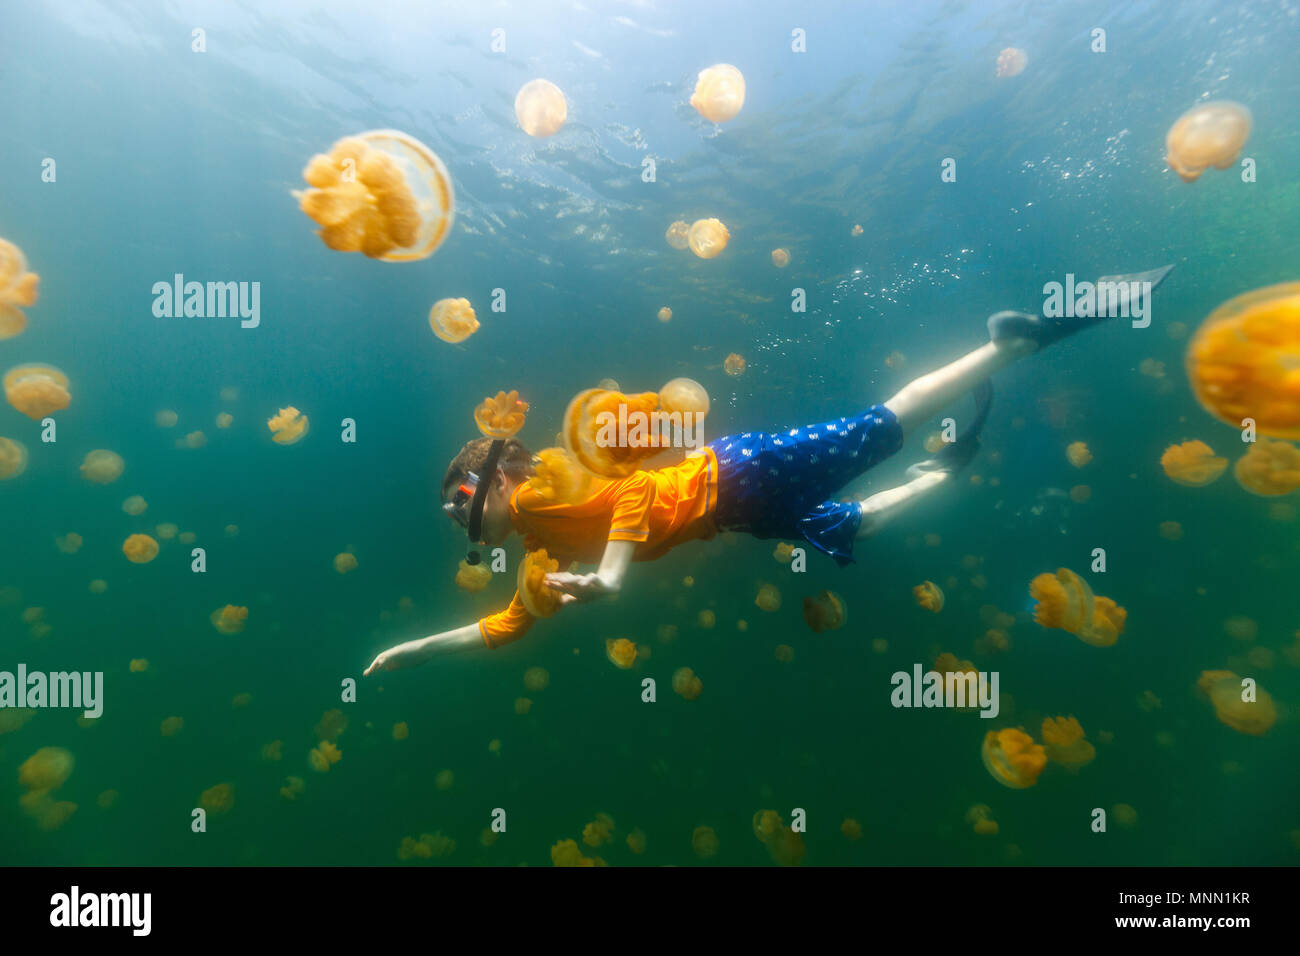 Underwater photo of child diving with endemic stingless jellyfish in lake at Palau. - Stock Image